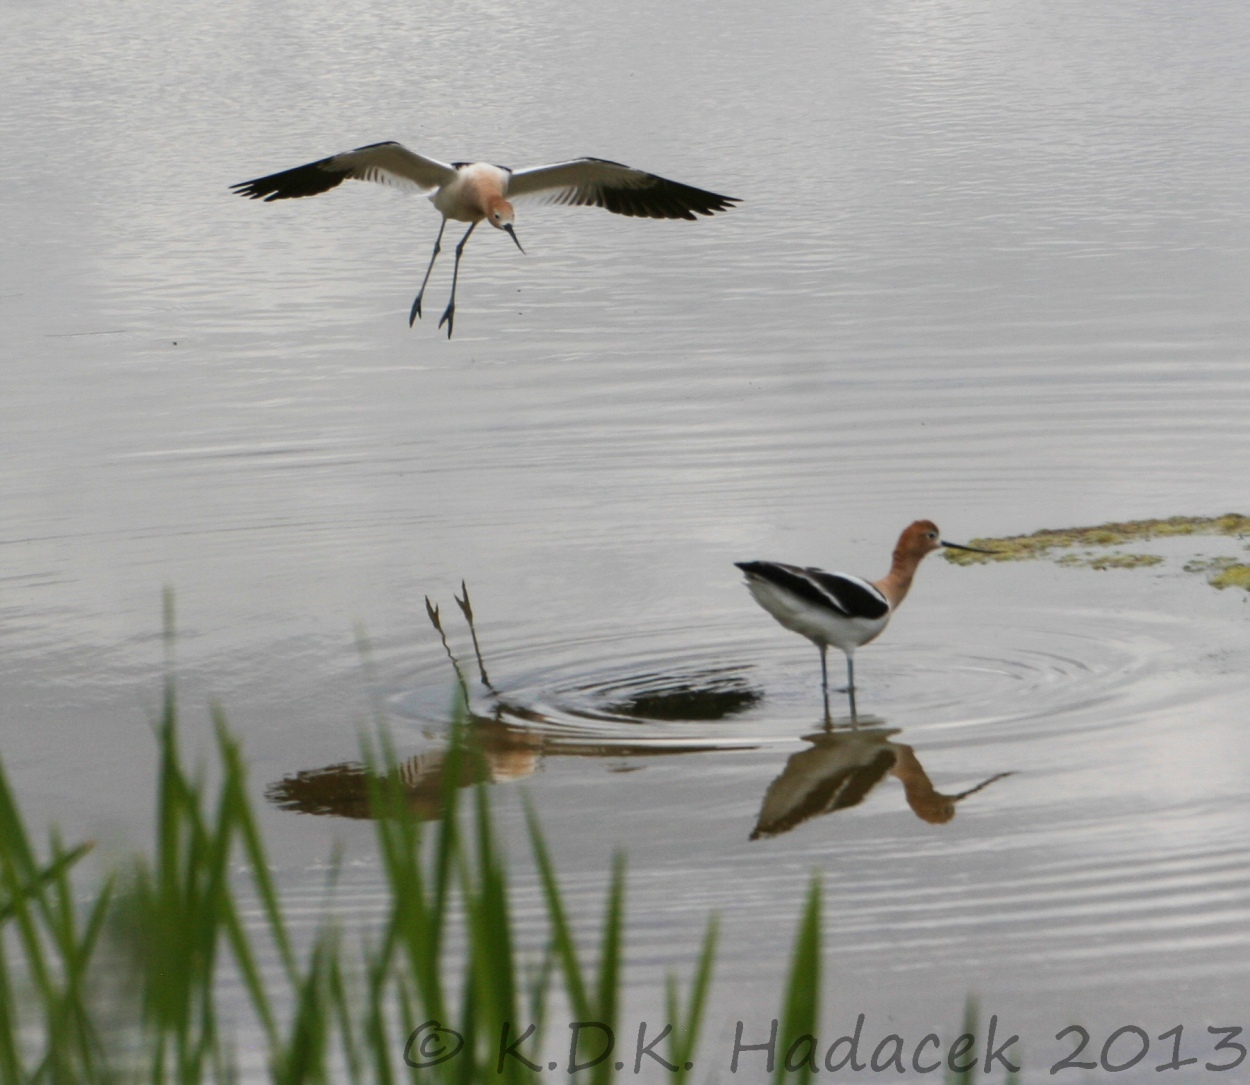 Avocets, landing bird, flying bird, wading bird